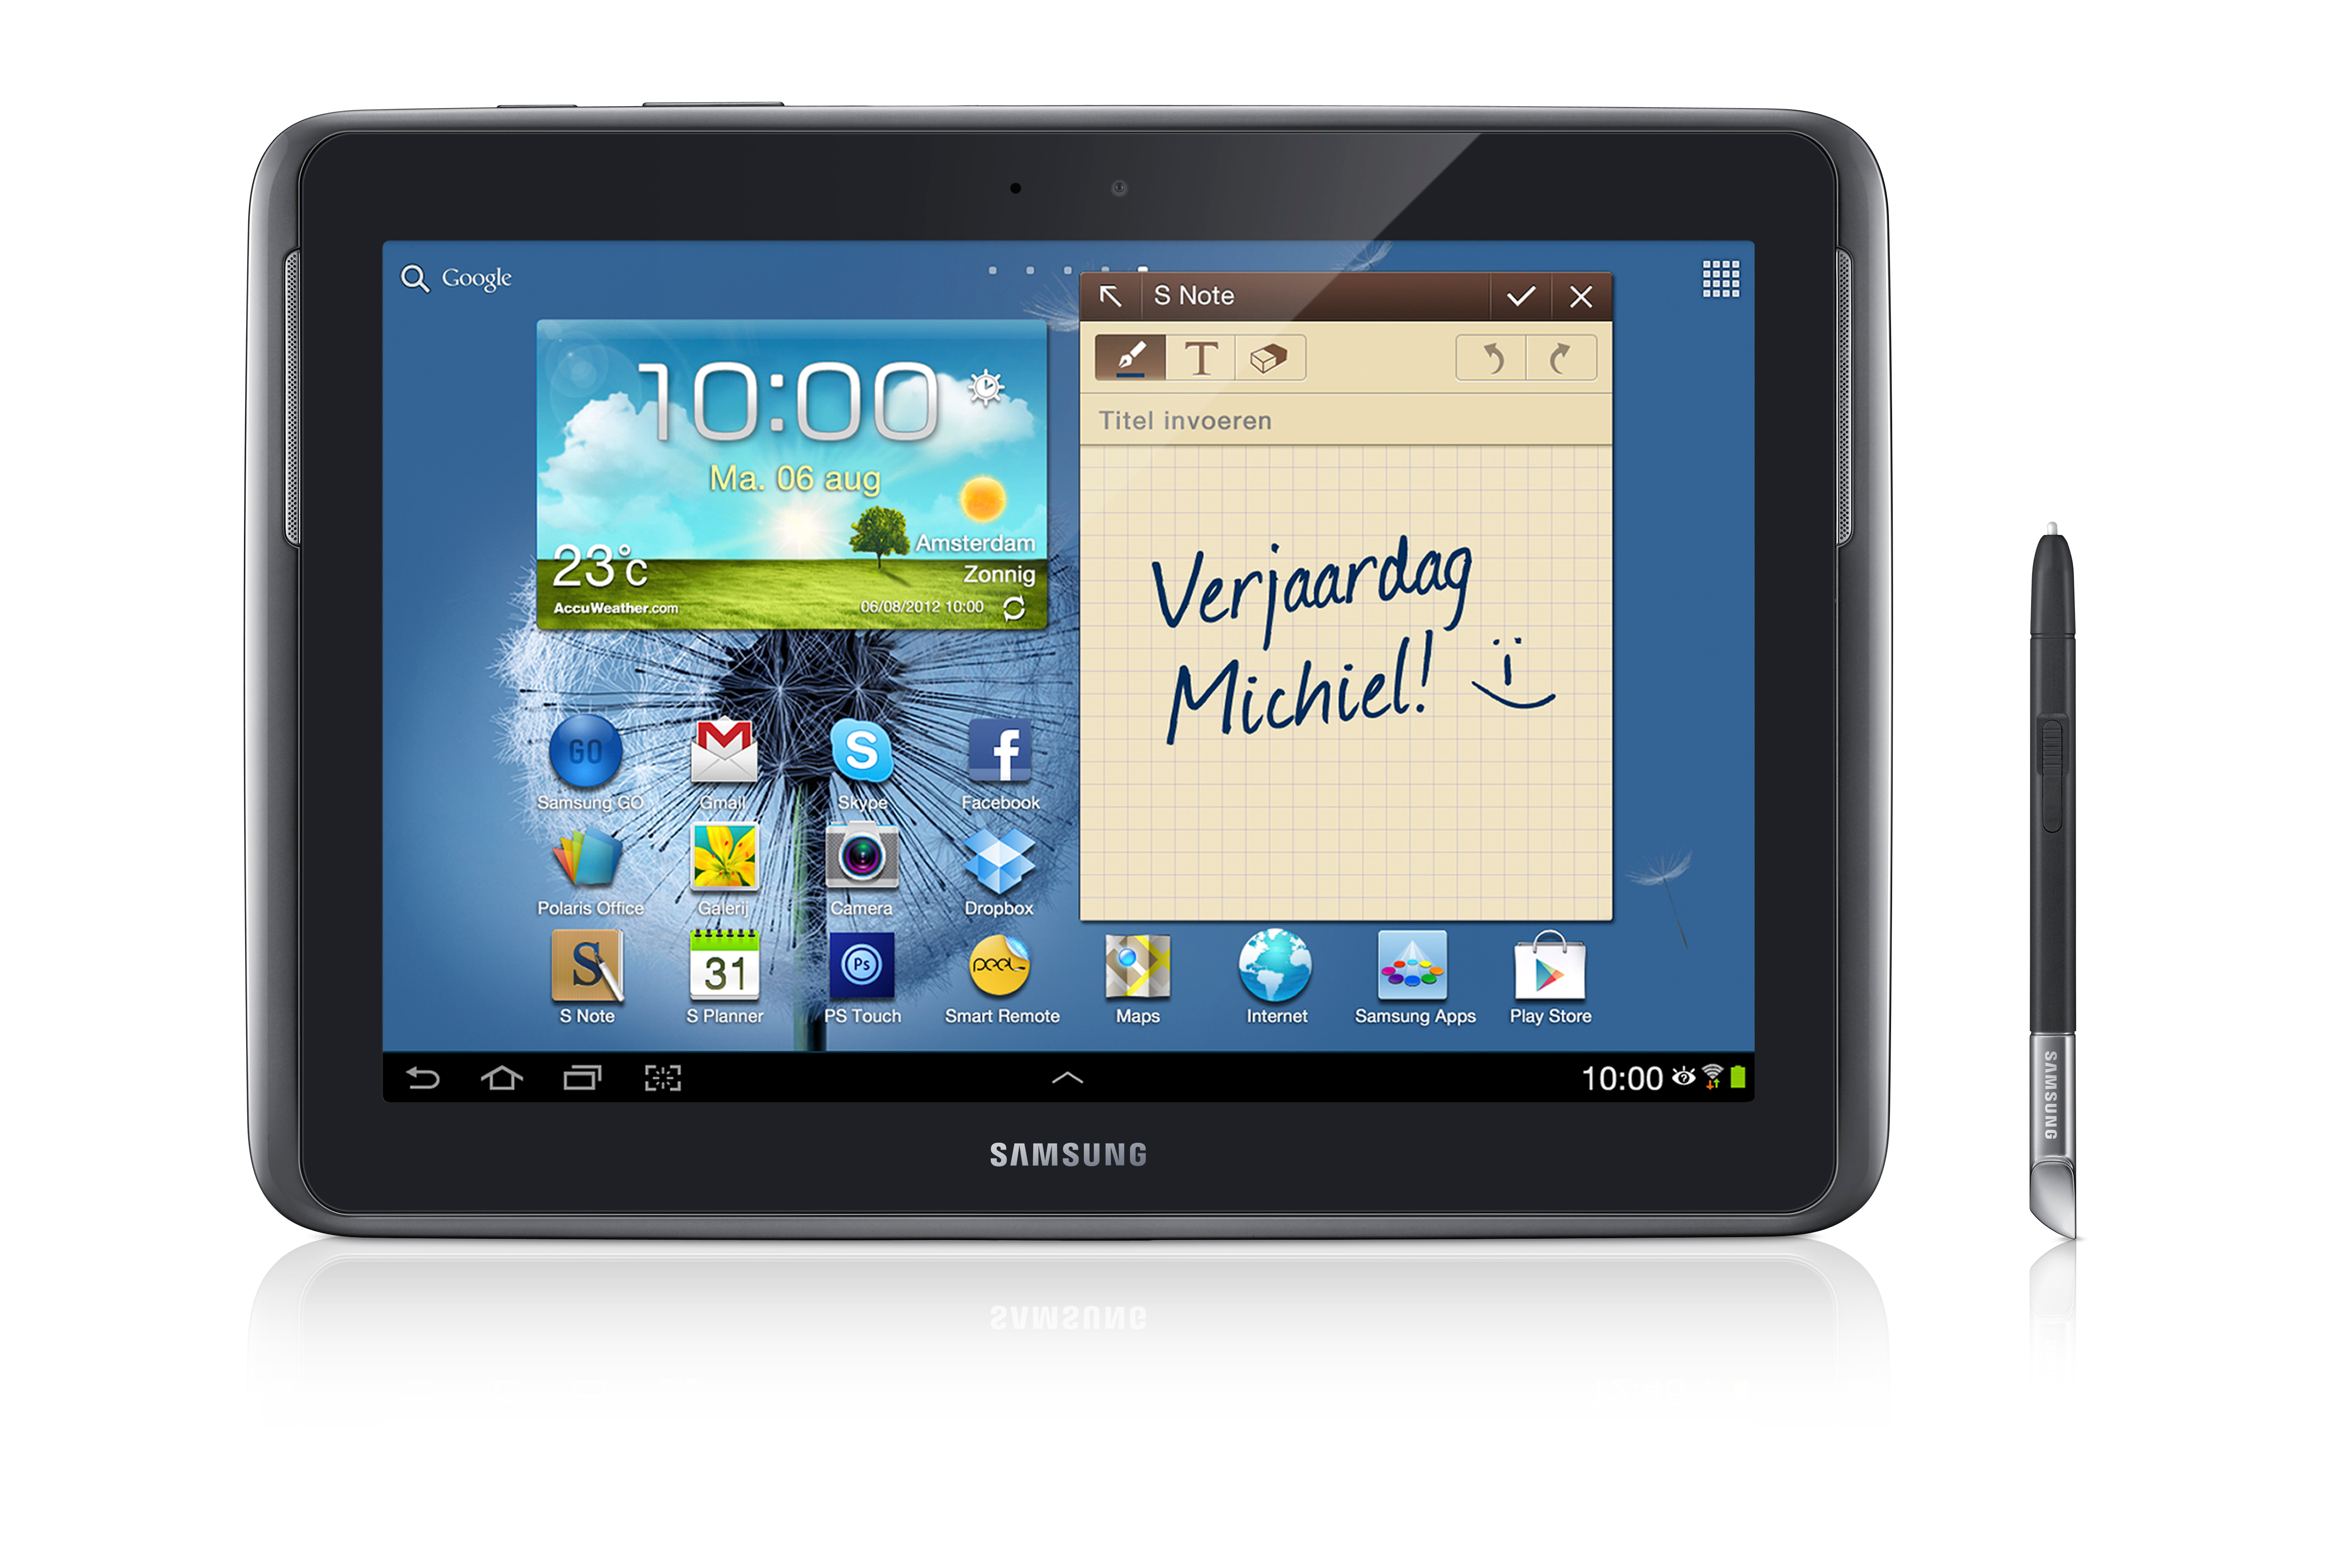 full firmware for device samsung galaxy note 10.1 gt-n8013